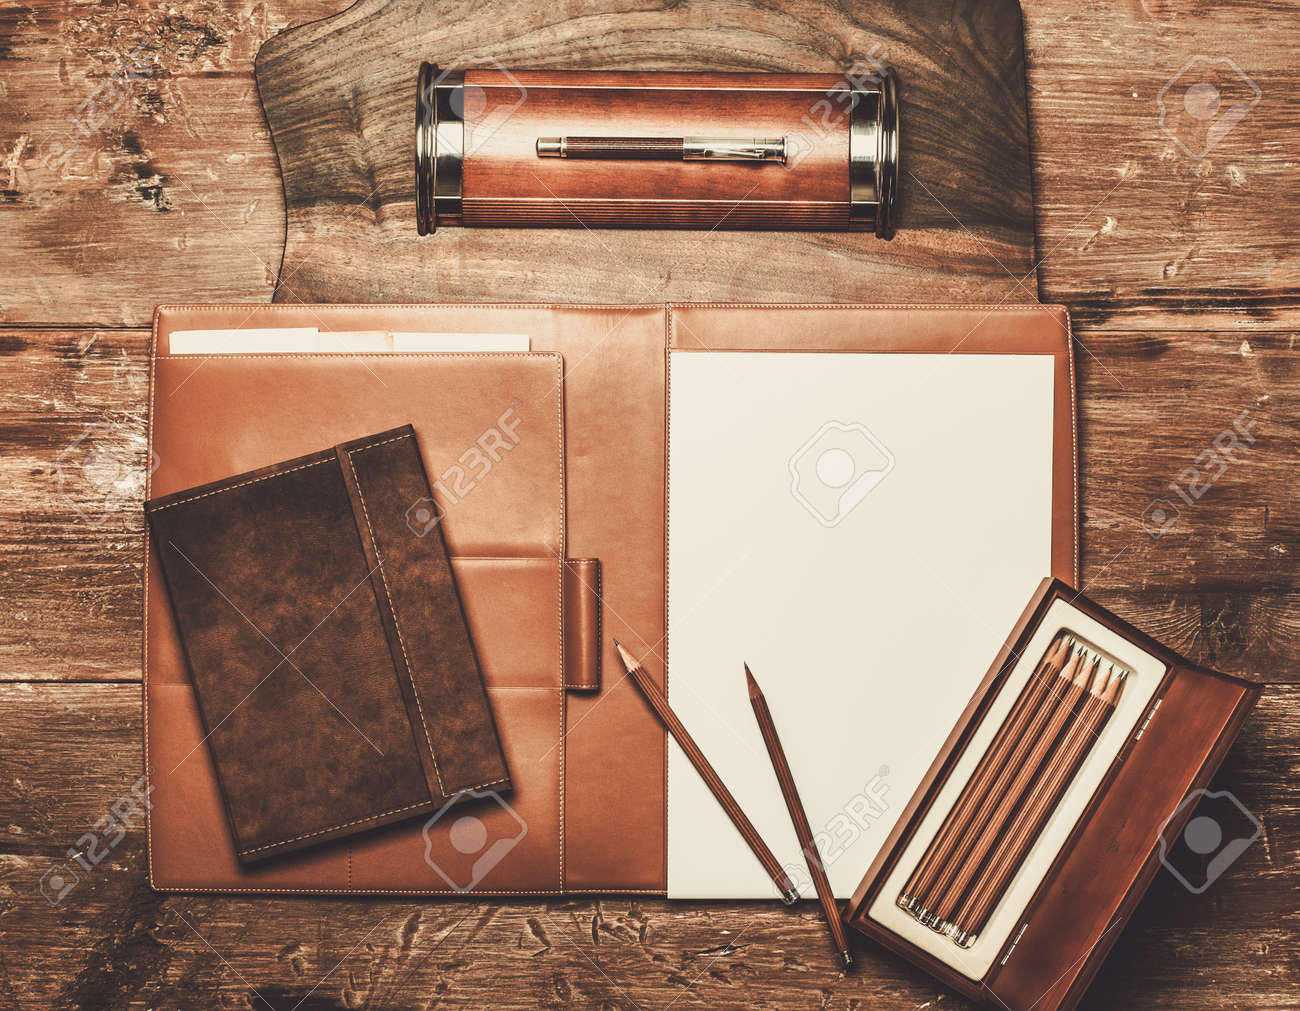 Luxurious writing tools on a wooden table - 41809070